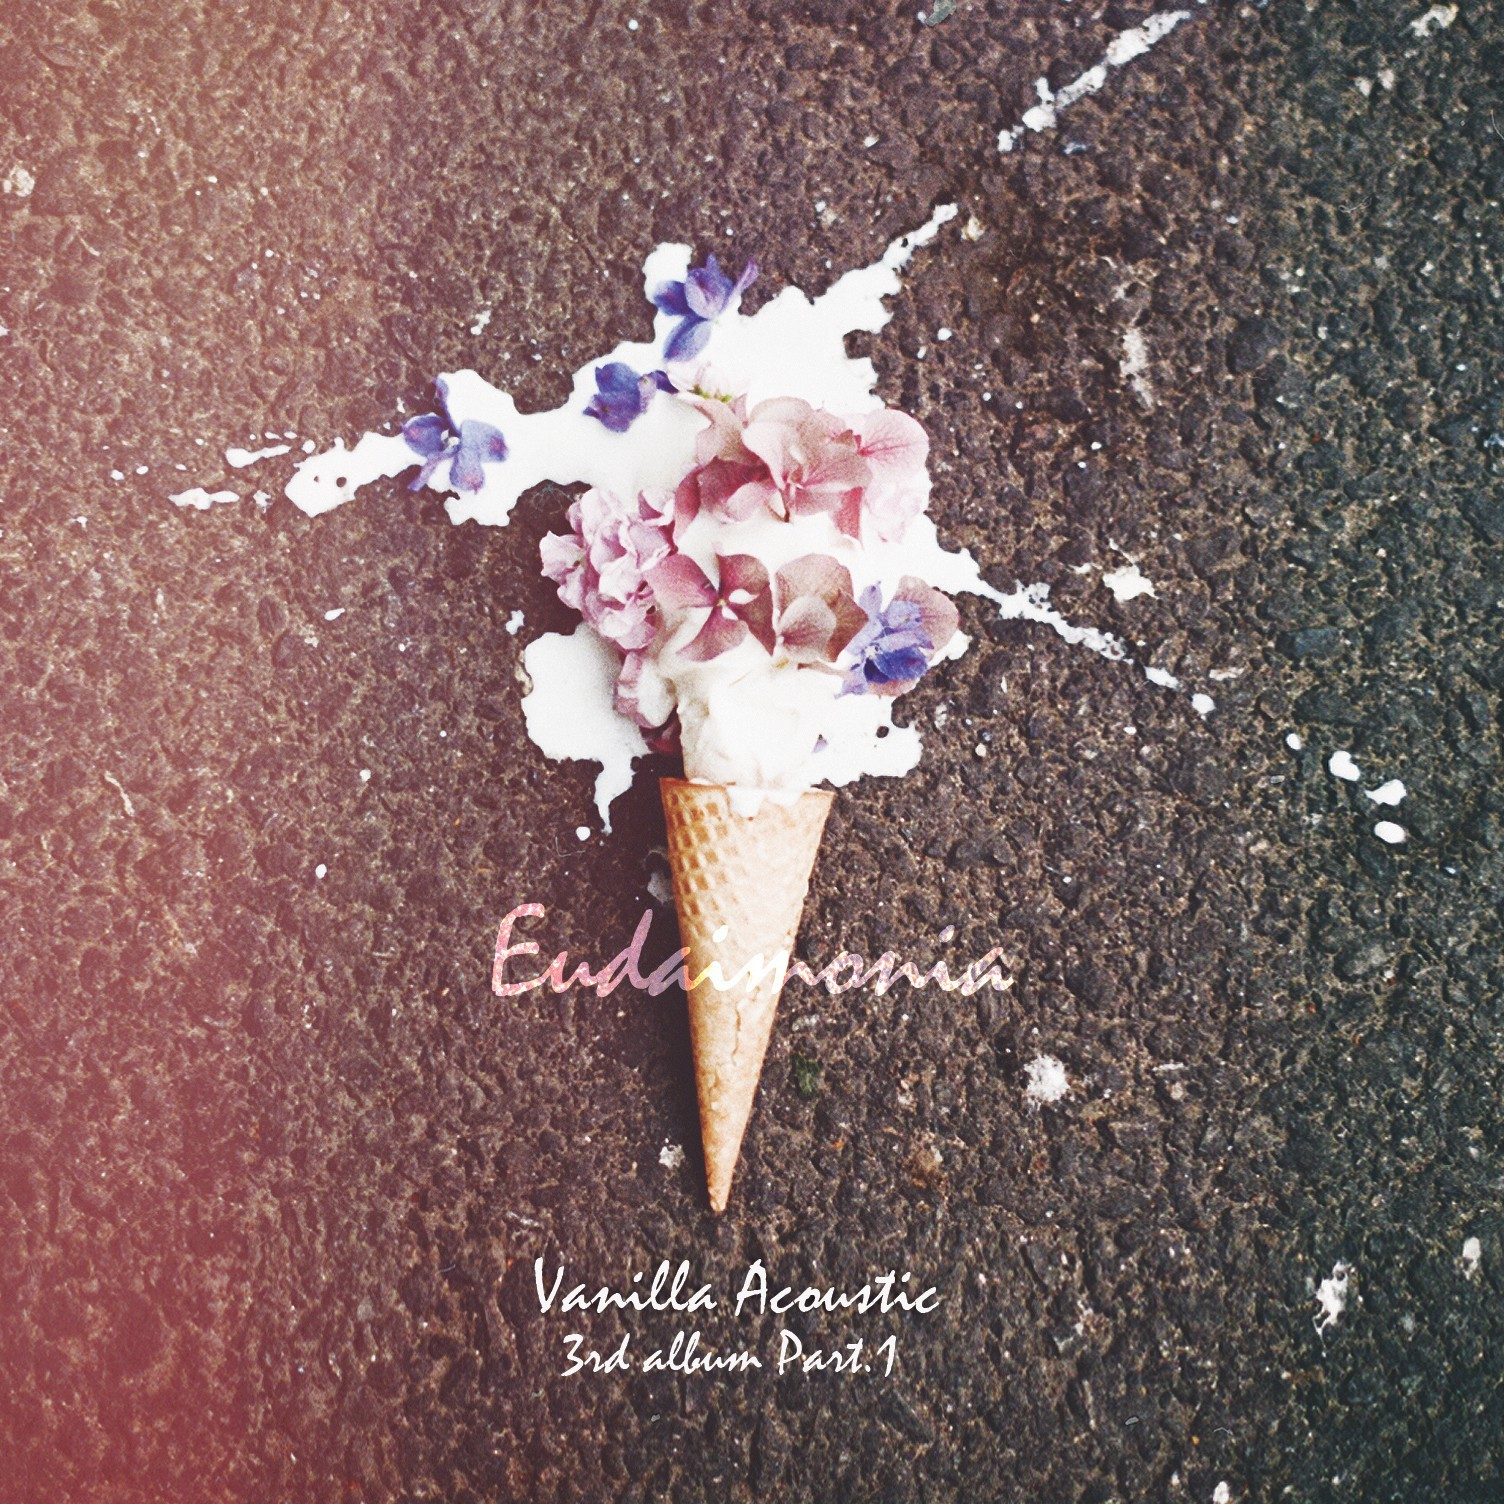 [Album] Vanilla Acoustic   3rd Part 1 Eudaimonia